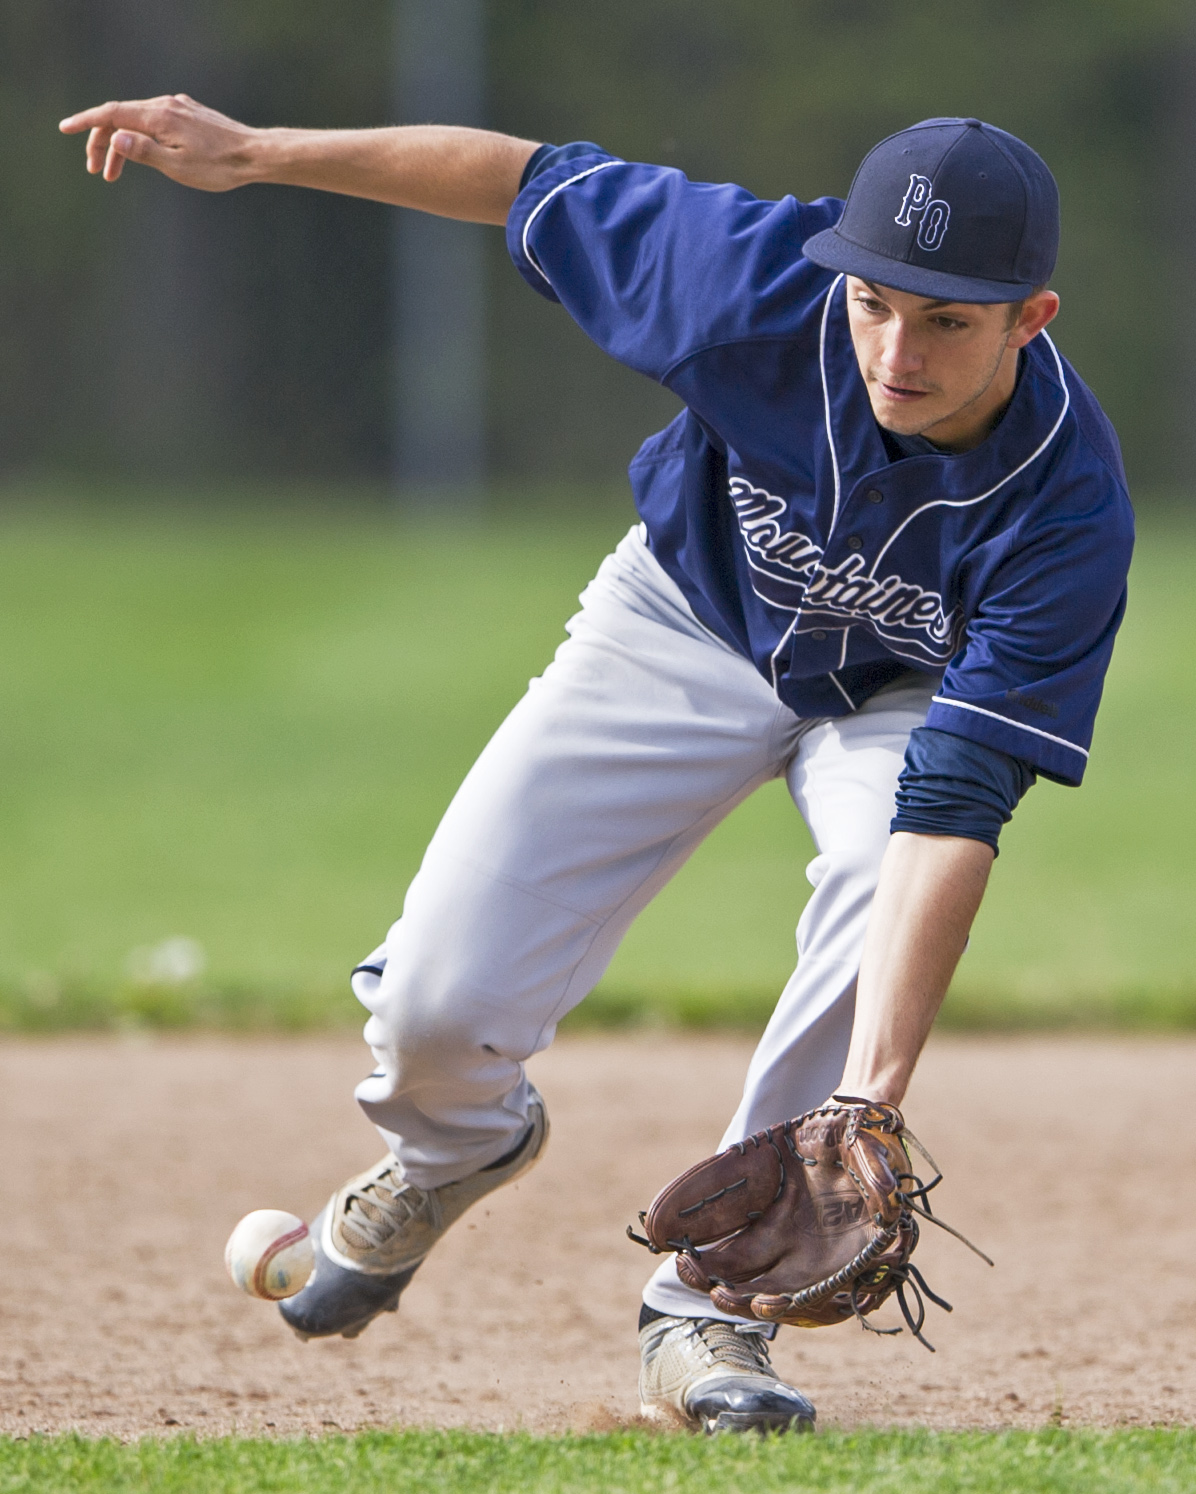 Phillipsburg-Osceola shortstop Logan Williamson leans for a ground ball during the home playoff game against Chestnut Ridge on Thursday, May 19, 2016. Phillipsburg won the game 4-3 in extra innings.